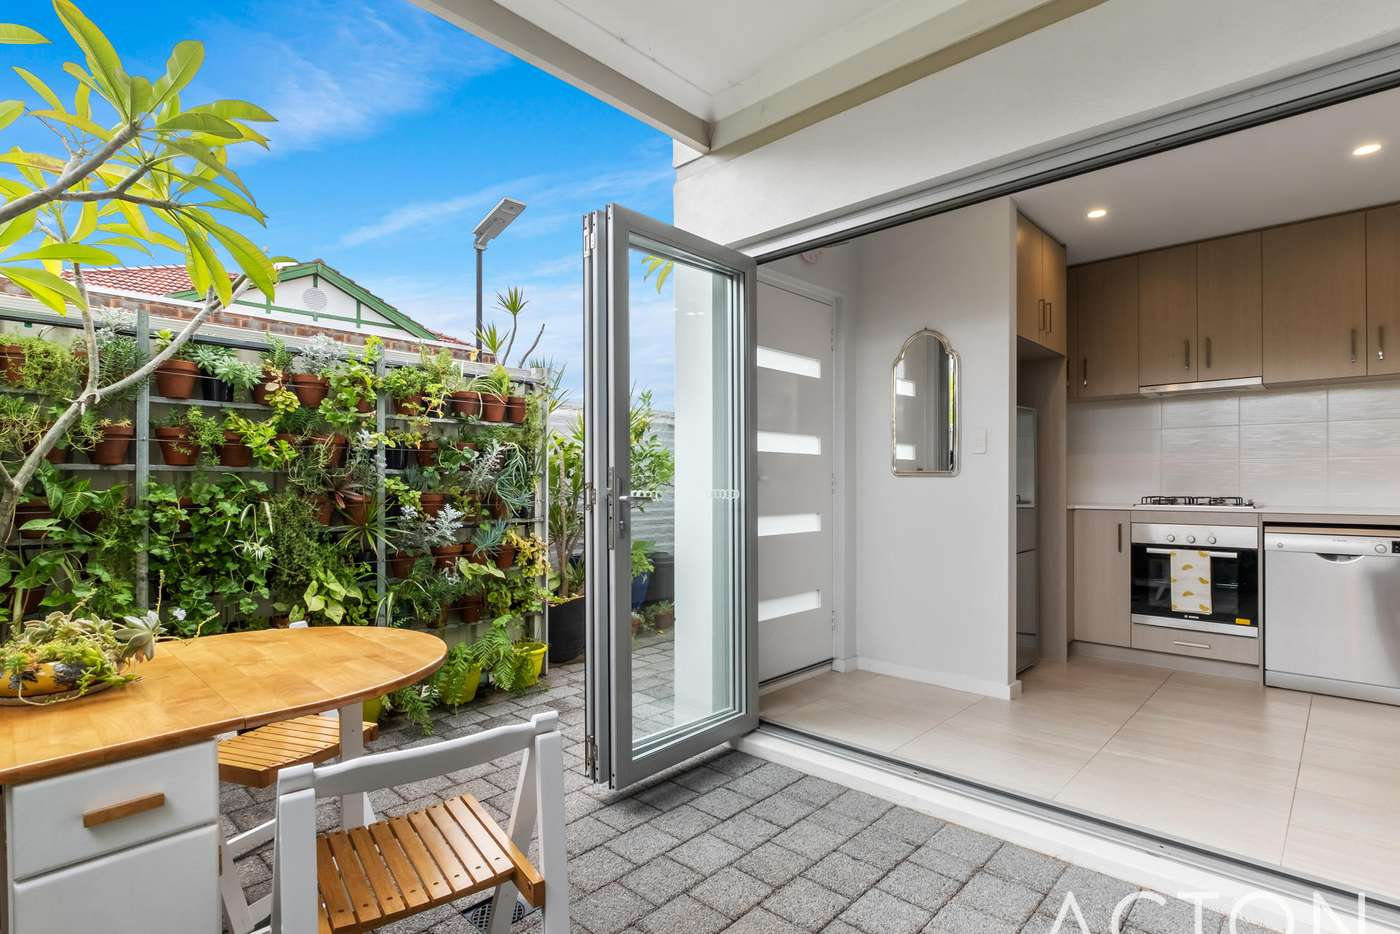 Sixth view of Homely house listing, 114A Harold Street, Mount Lawley WA 6050